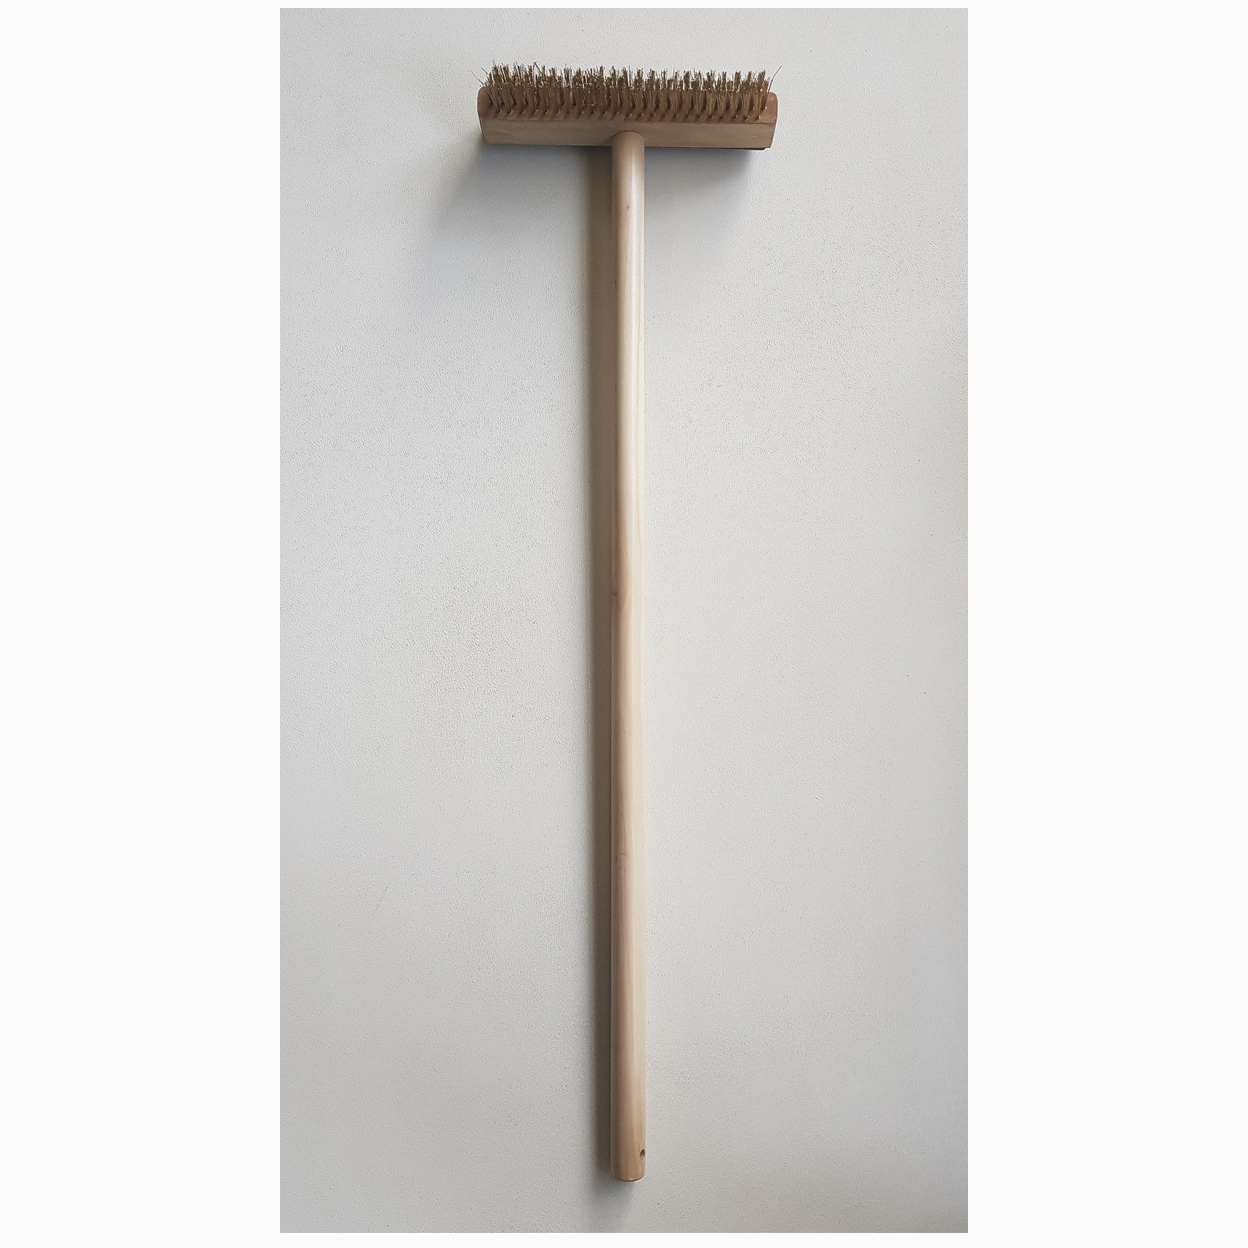 pizza Oven Brush with wood handle